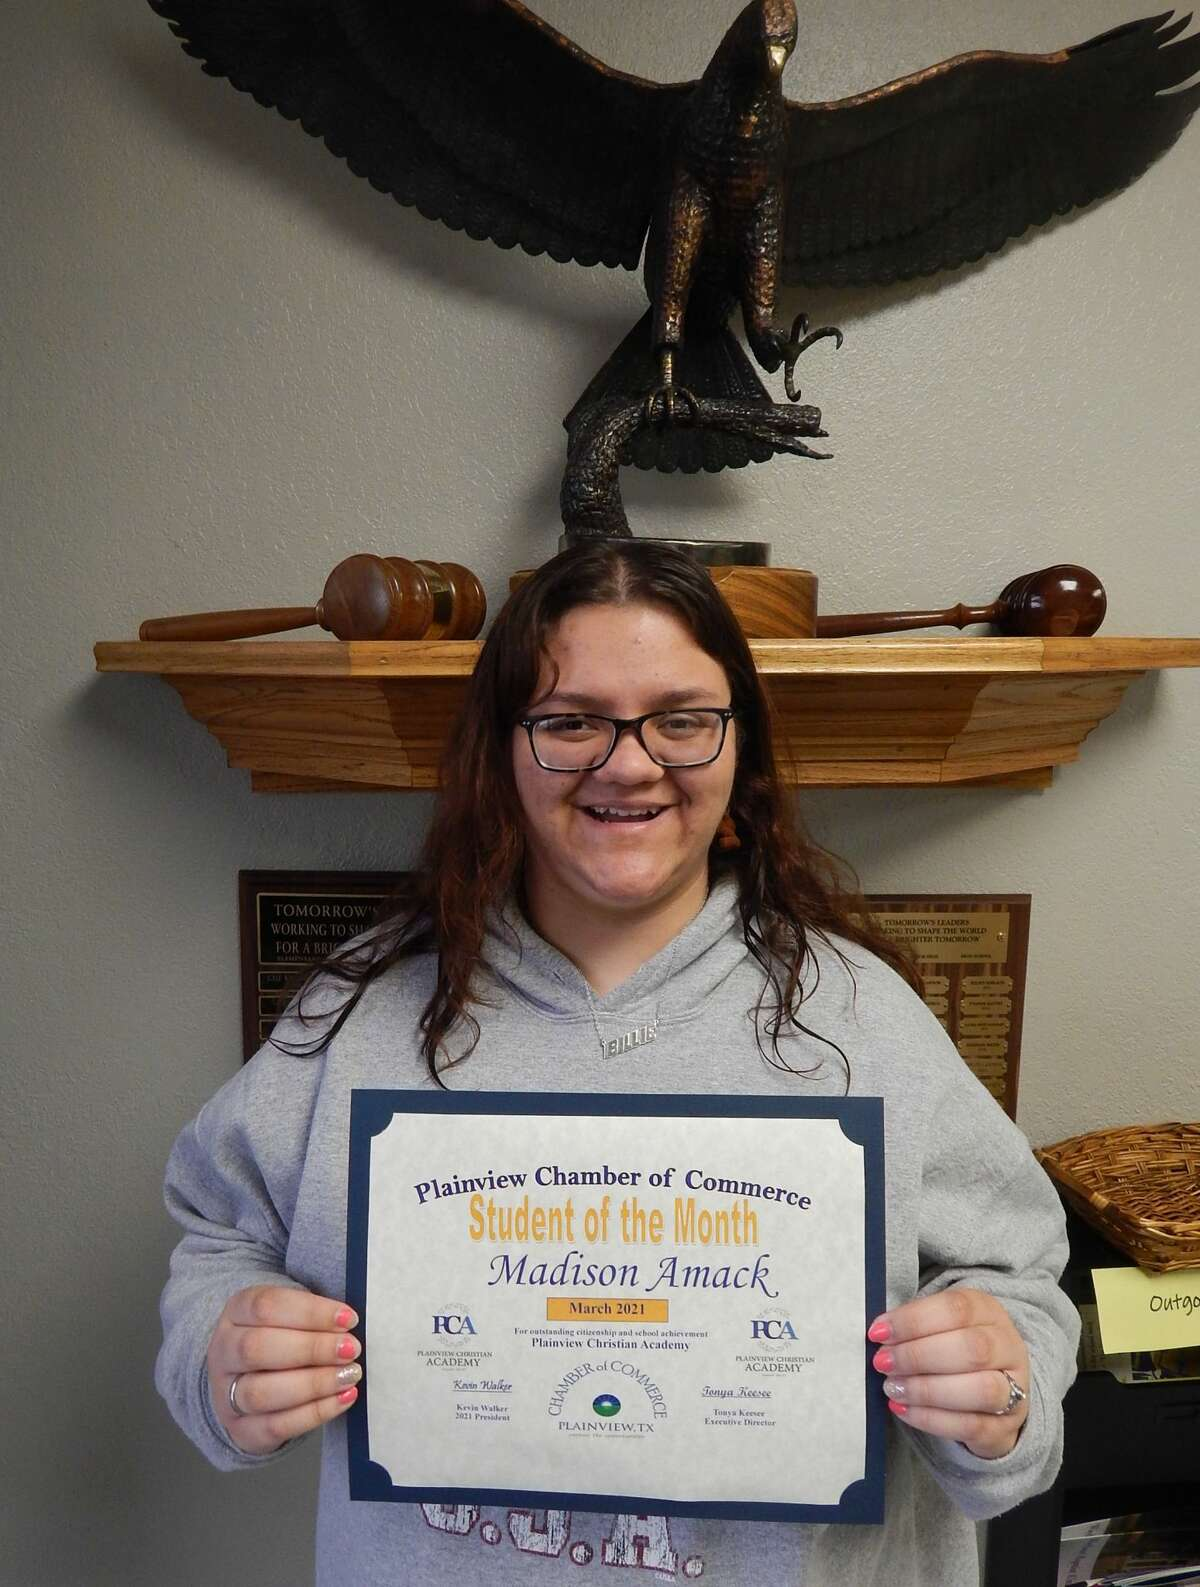 Madison Amack, a PCA senior, was recognized as the March 2021 Student of the Month by the Plainview Chamber of Commerce.